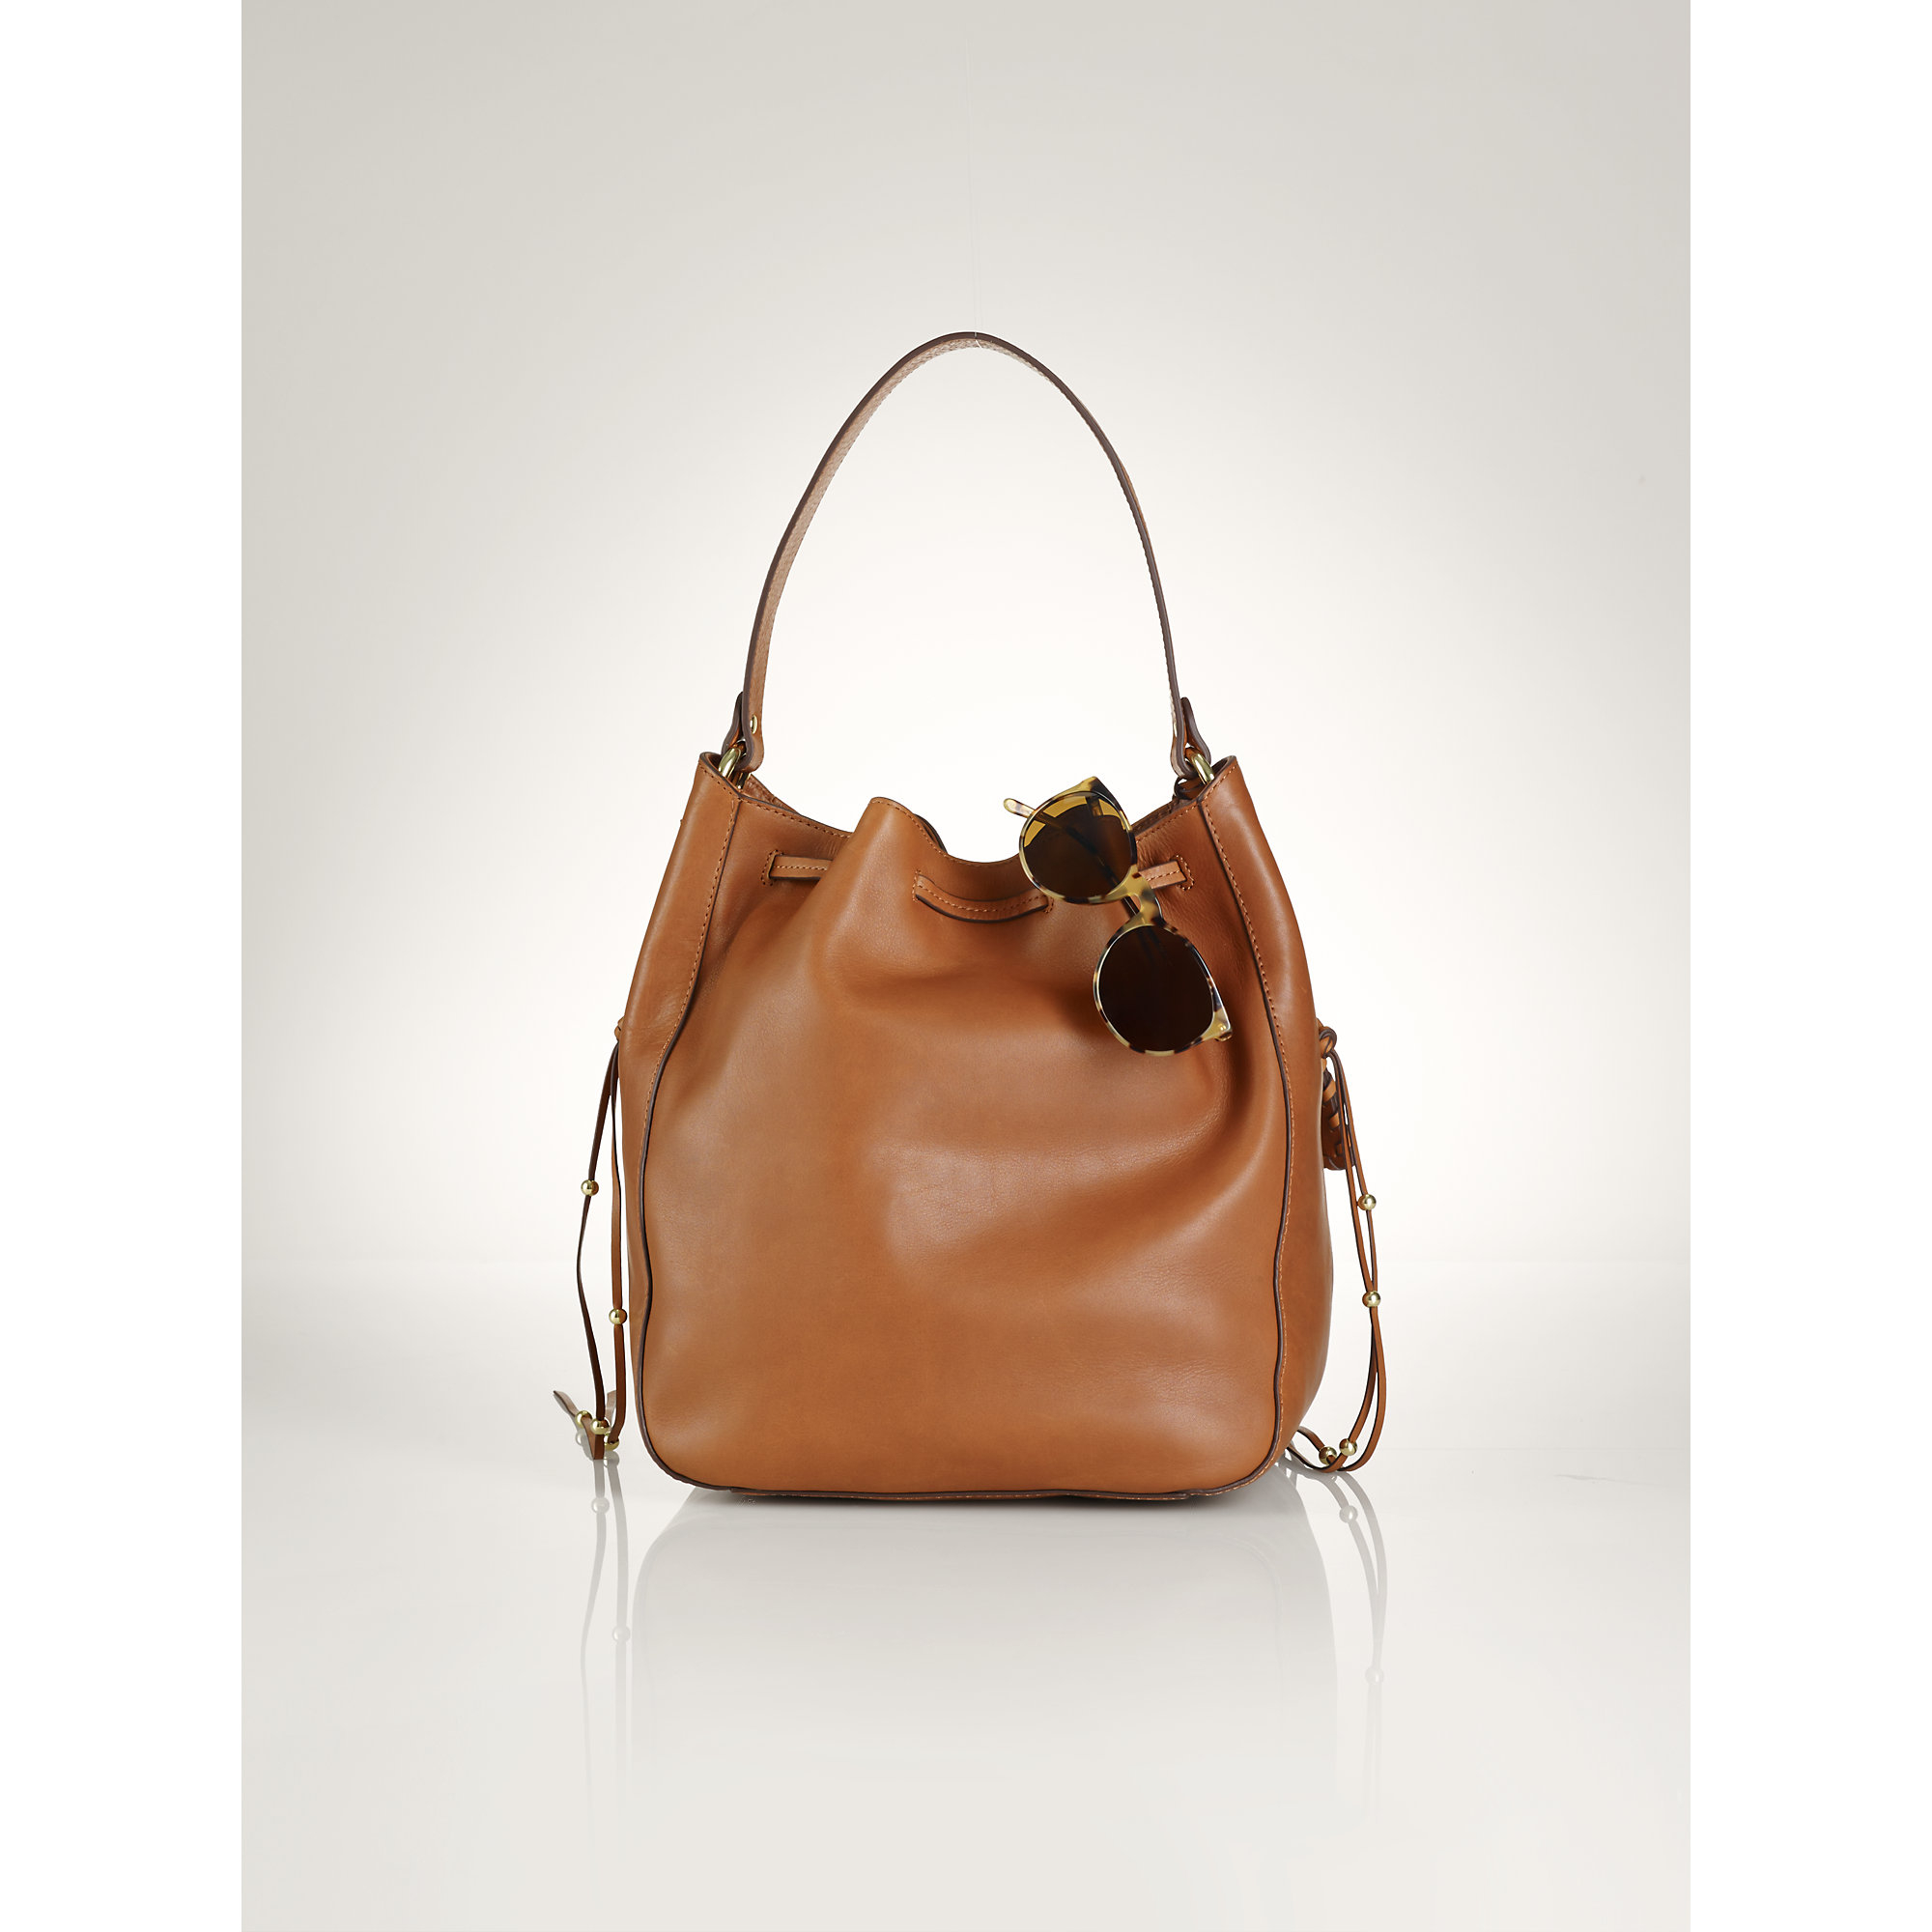 7a92c8a23d88 Lyst - Polo Ralph Lauren Laced Leather Drawstring Bag in Brown